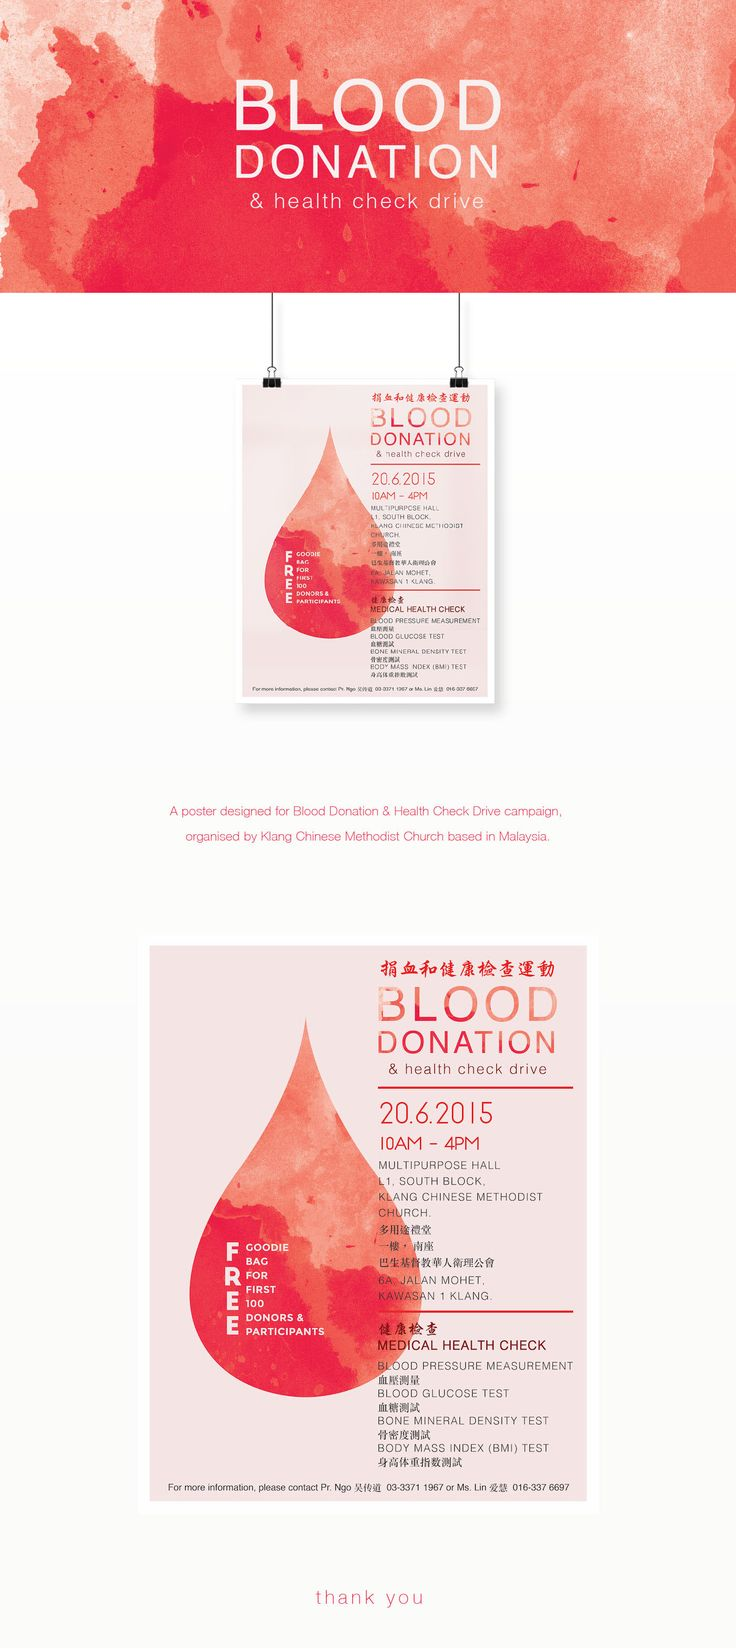 Poster design on blood donation - A Poster Designed For Blood Donation Health Check Drive Campaign